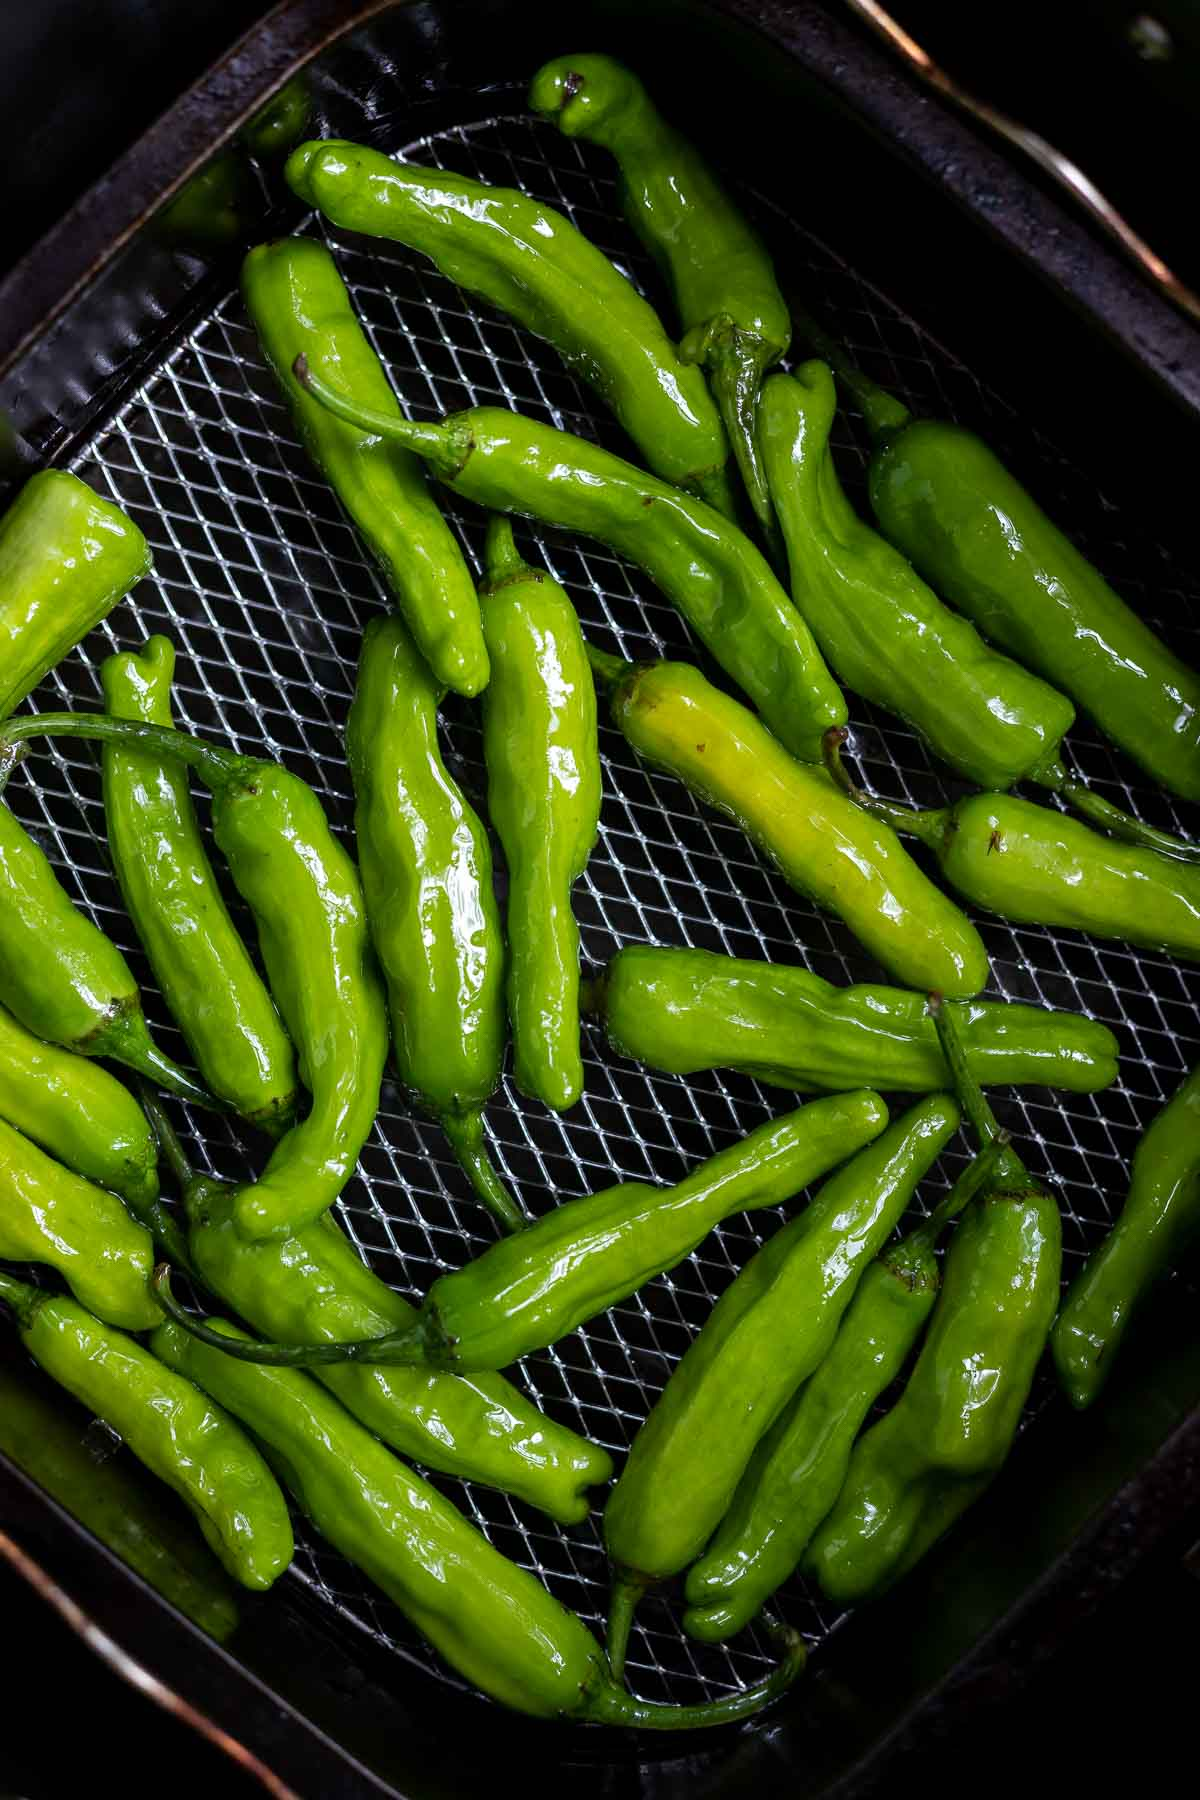 uncooked shishito peppers in air fryer basket